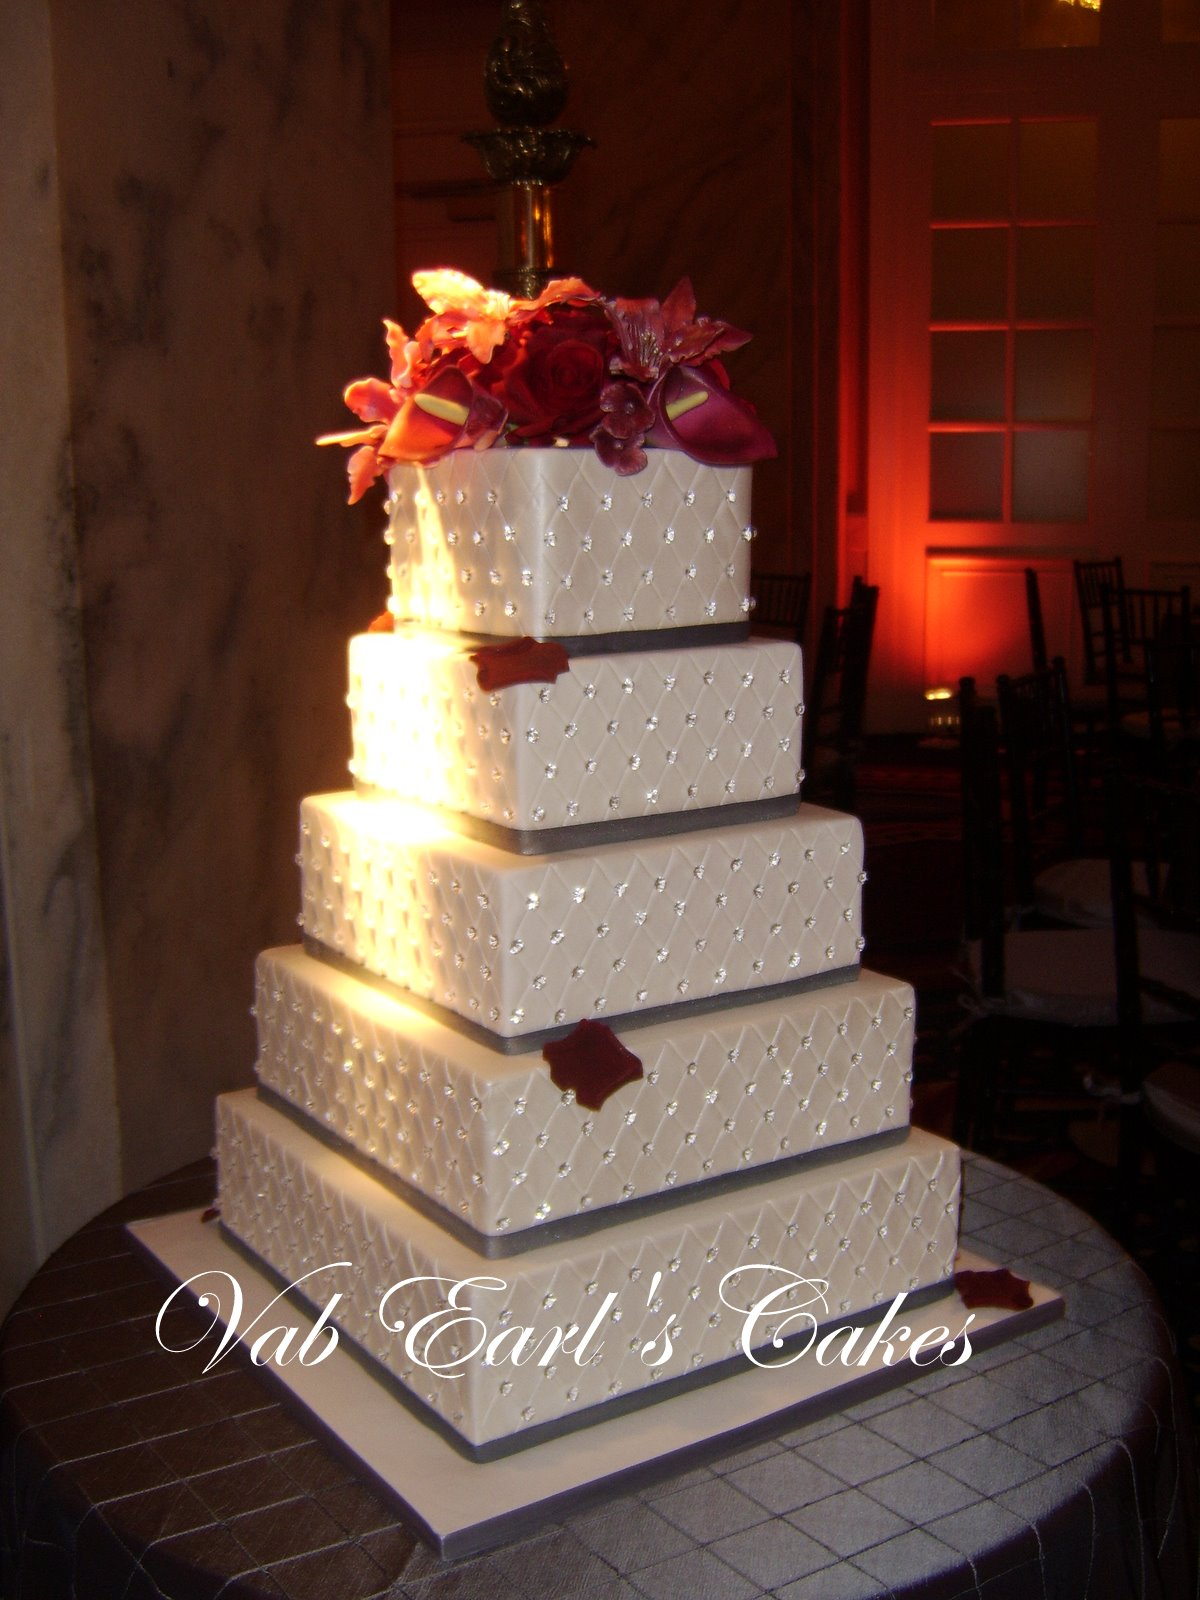 13 Photos of Square Wedding Cakes Crystals